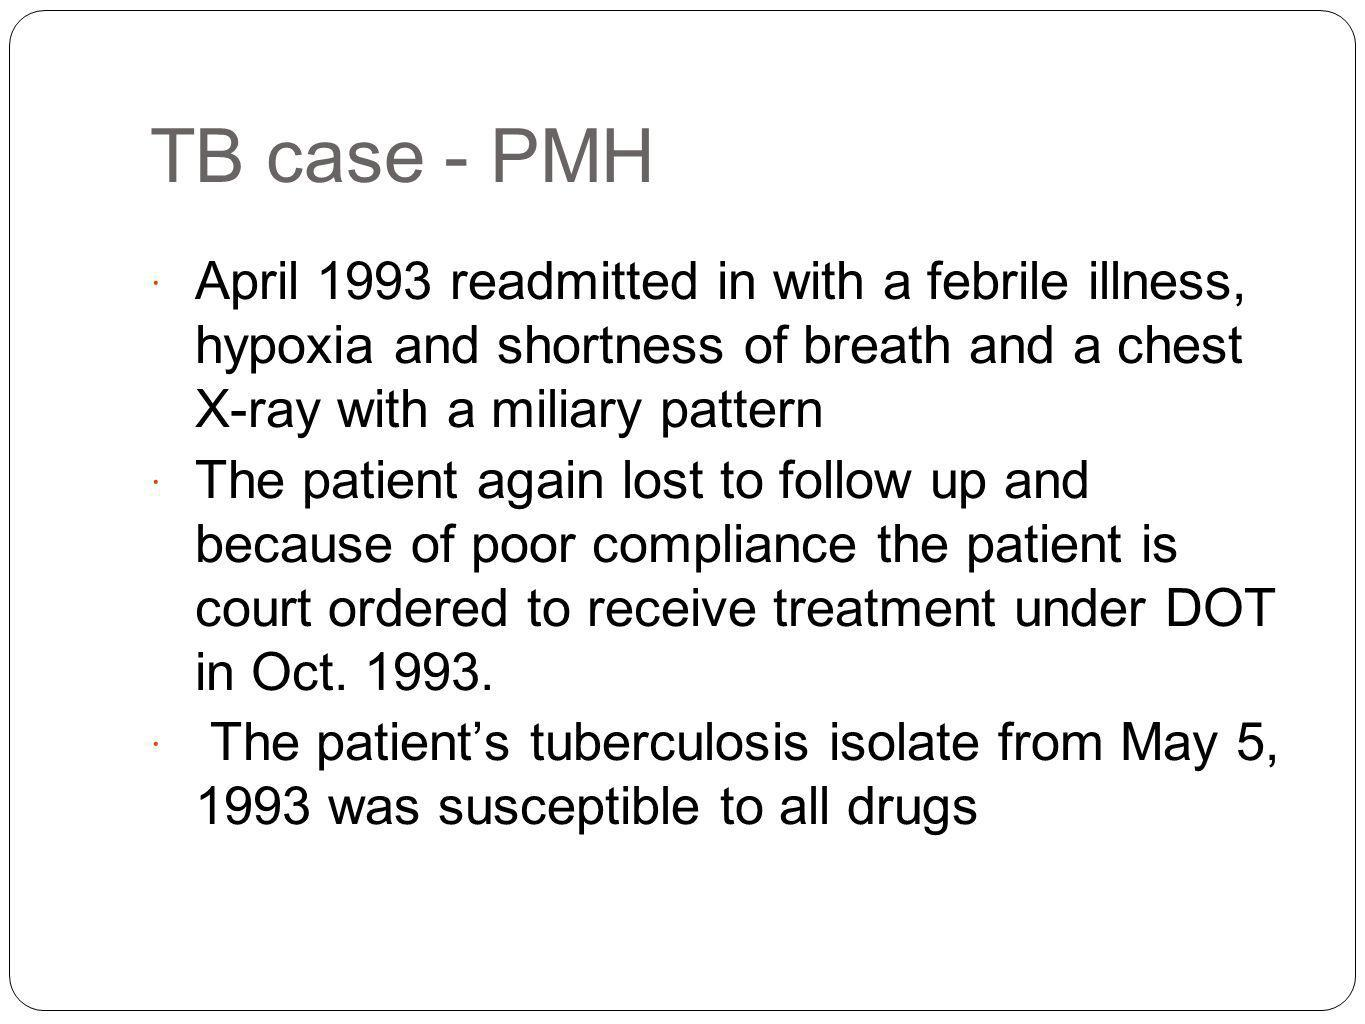 TB case - PMH April 1993 readmitted in with a febrile illness, hypoxia and shortness of breath and a chest X-ray with a miliary pattern.